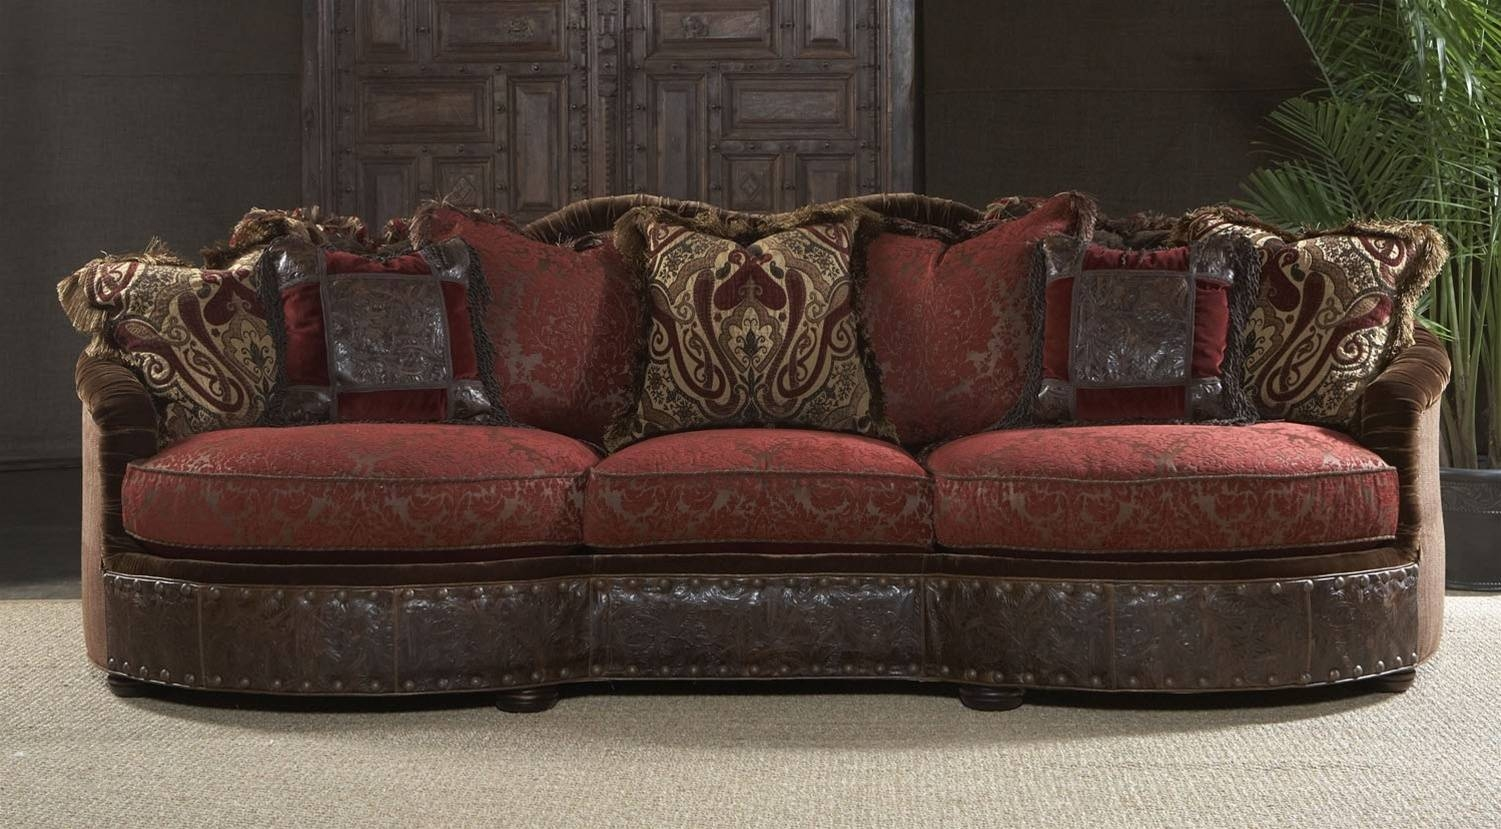 Sofas Center : Sofa Expensive Leather Sofas Roomsigncor Luxury To for Expensive Sectional Sofas (Image 27 of 30)